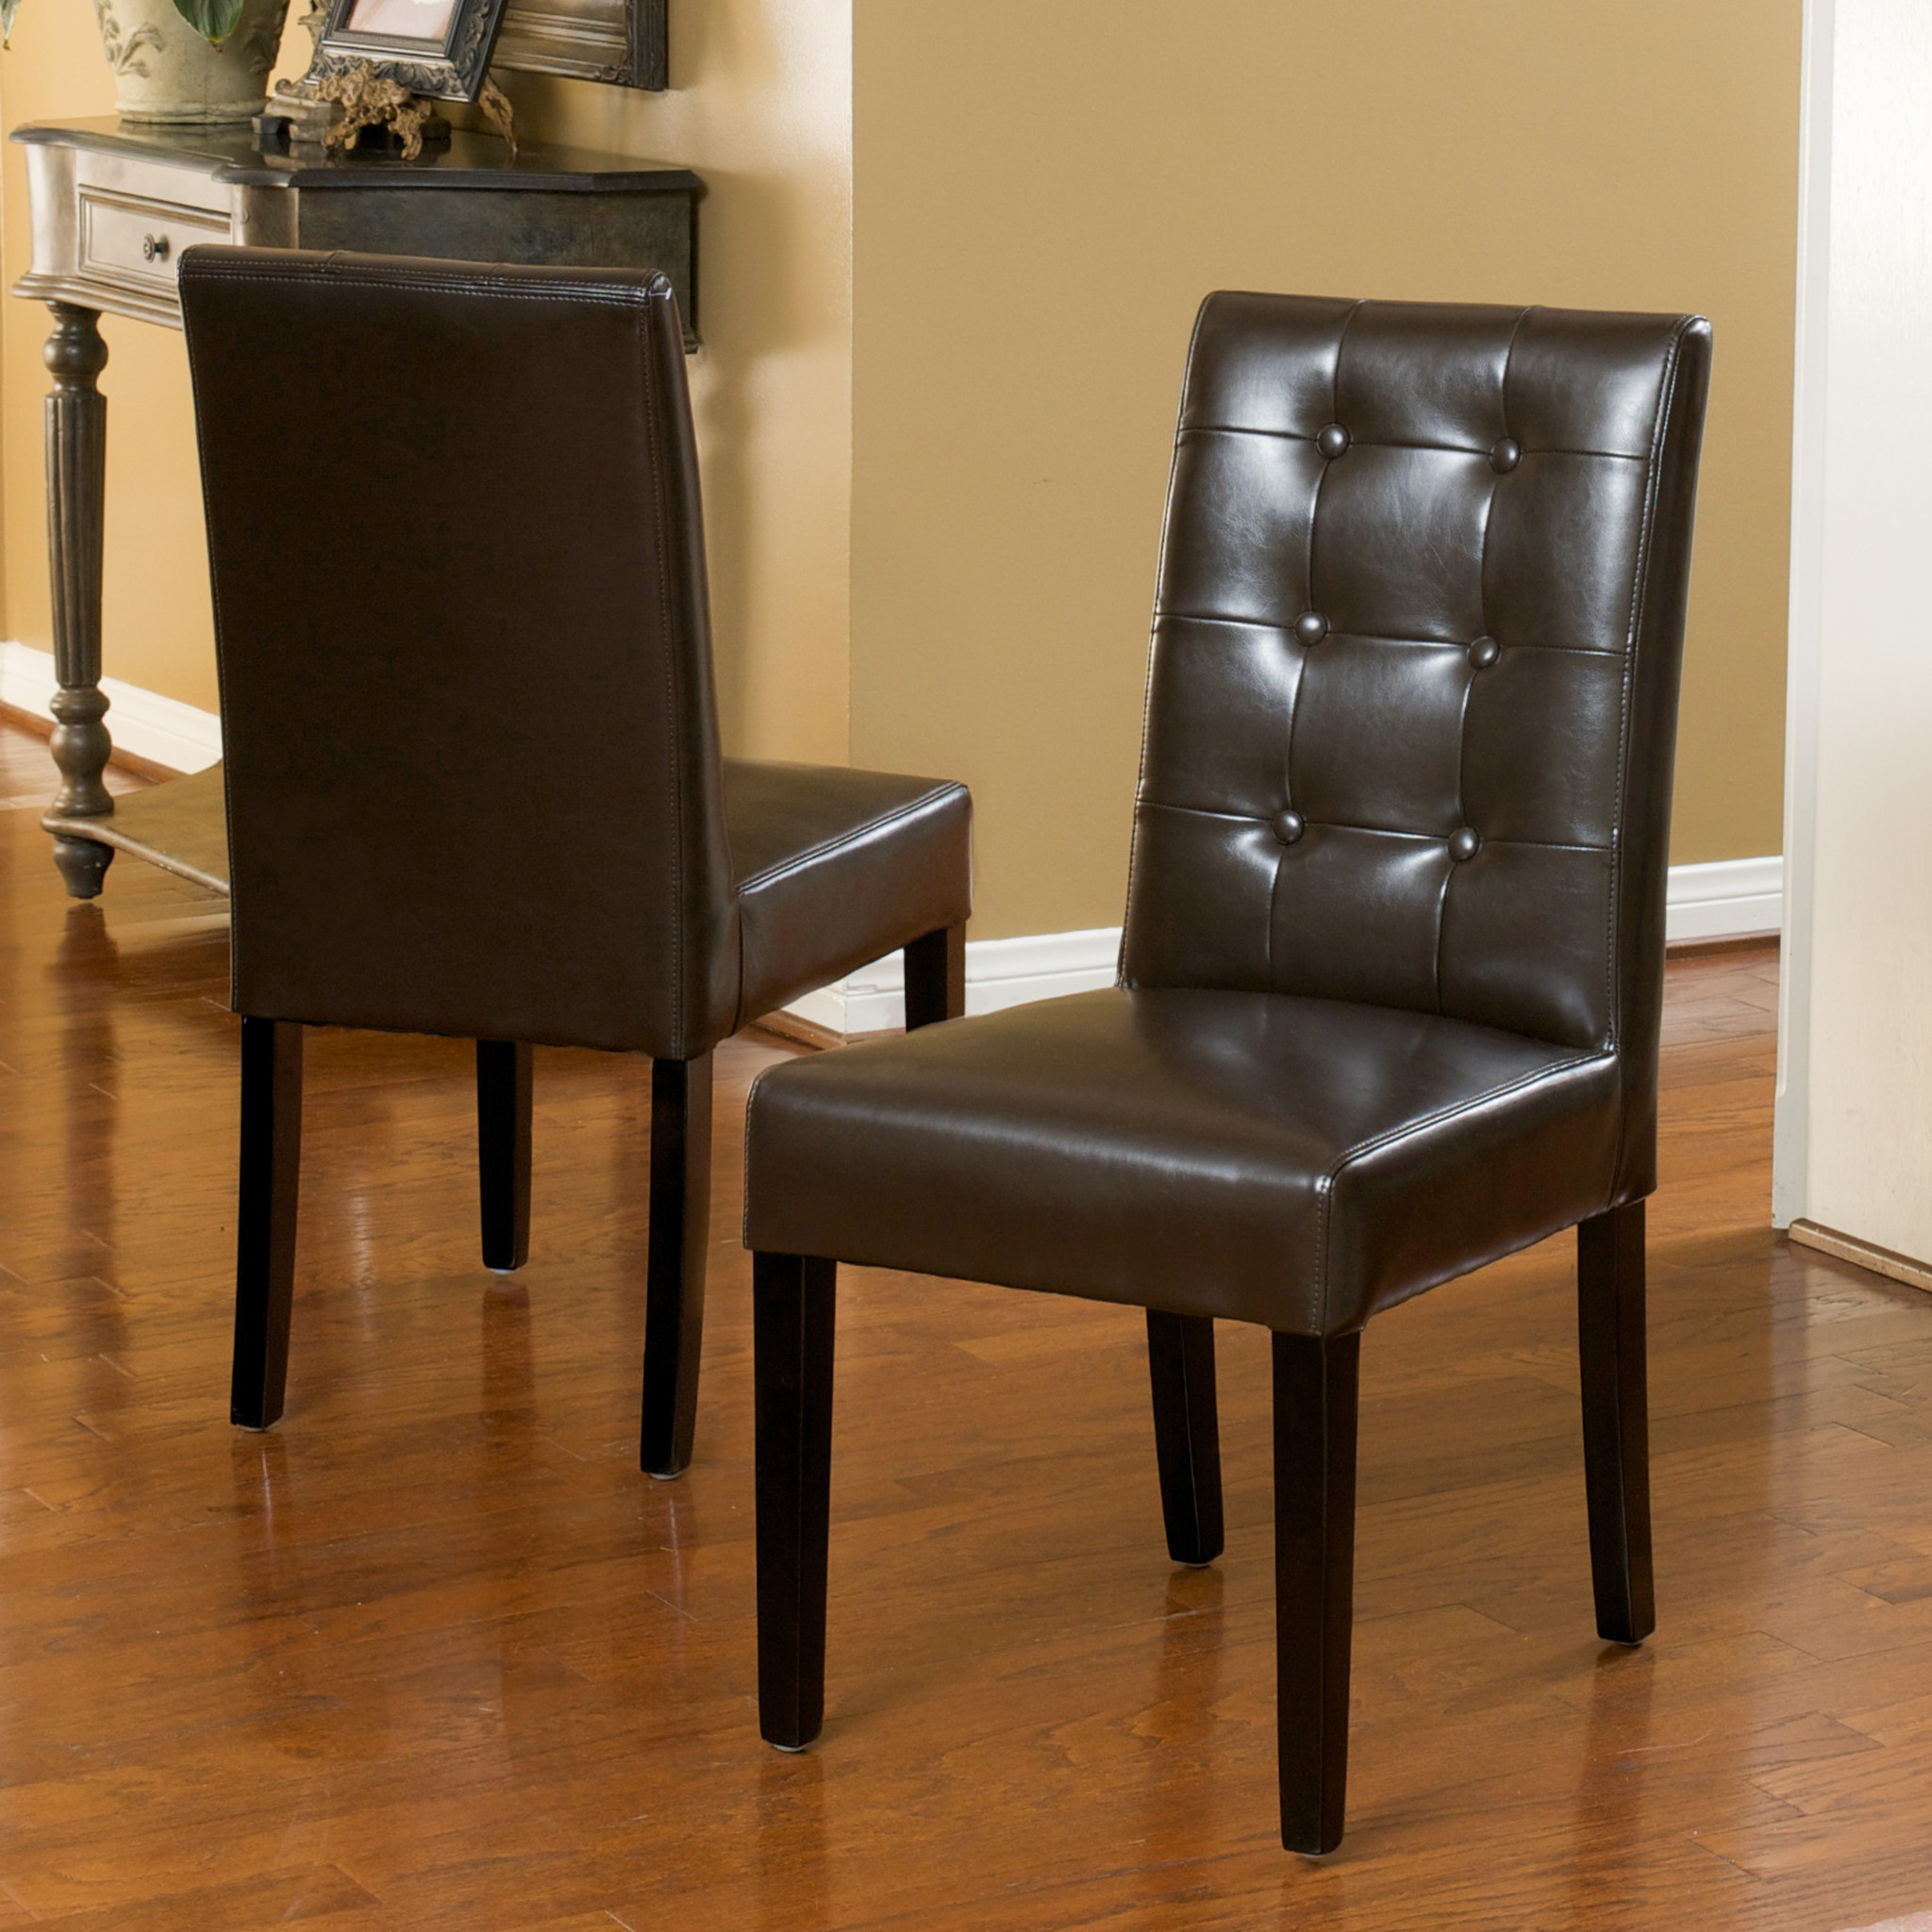 Ririe Brown Bonded Leather Dining Chairs (Set of 2)